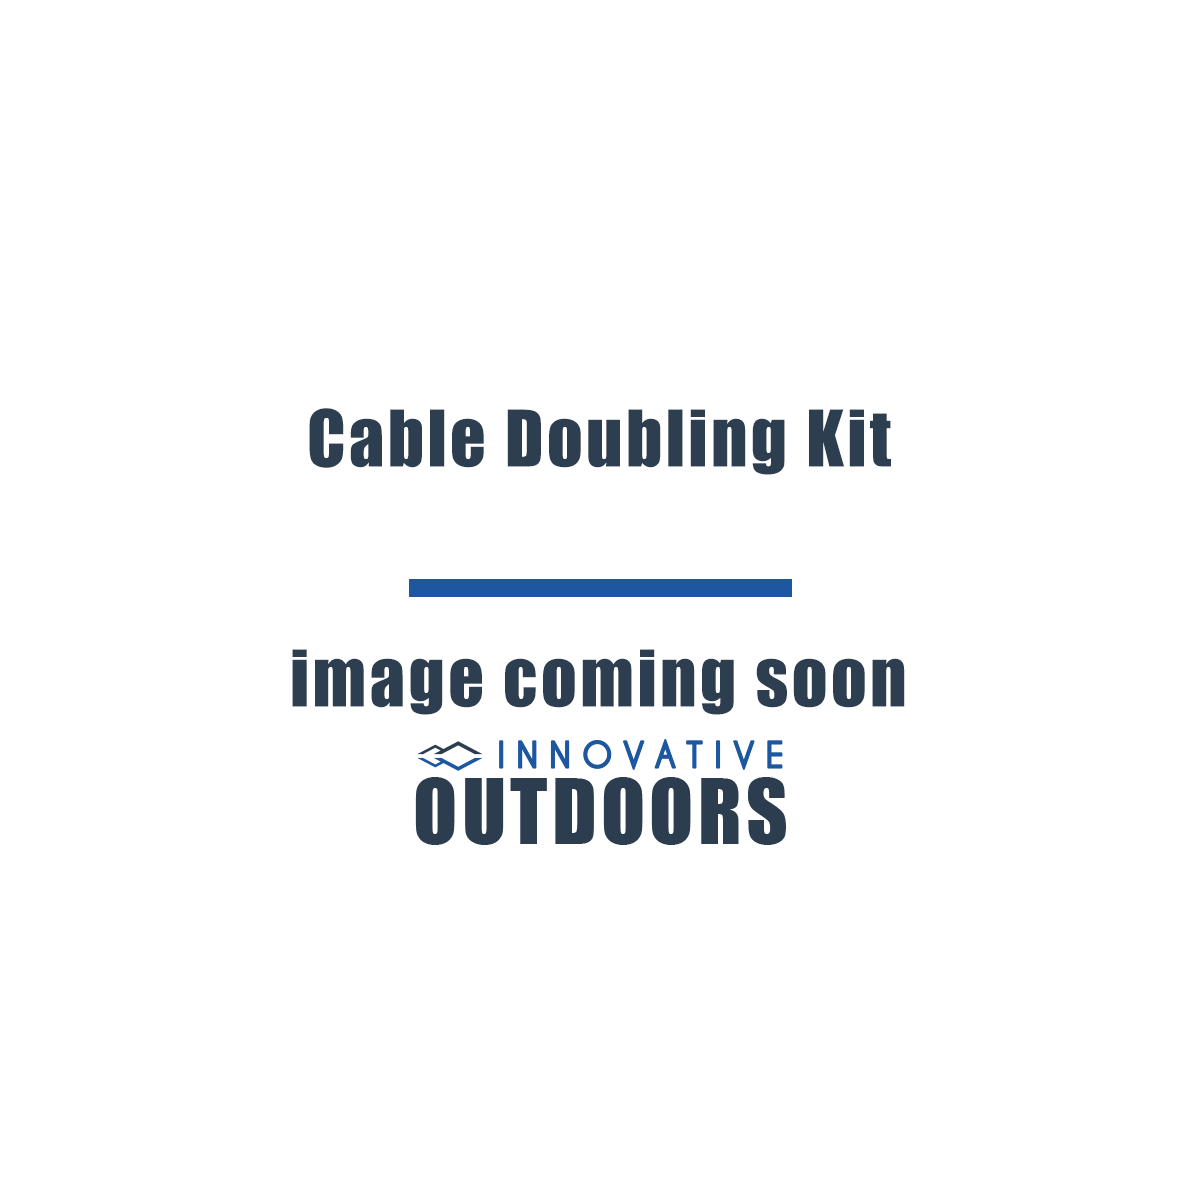 Cable Doubling Kit for Roll-n-Go 4200 Railway Docking System